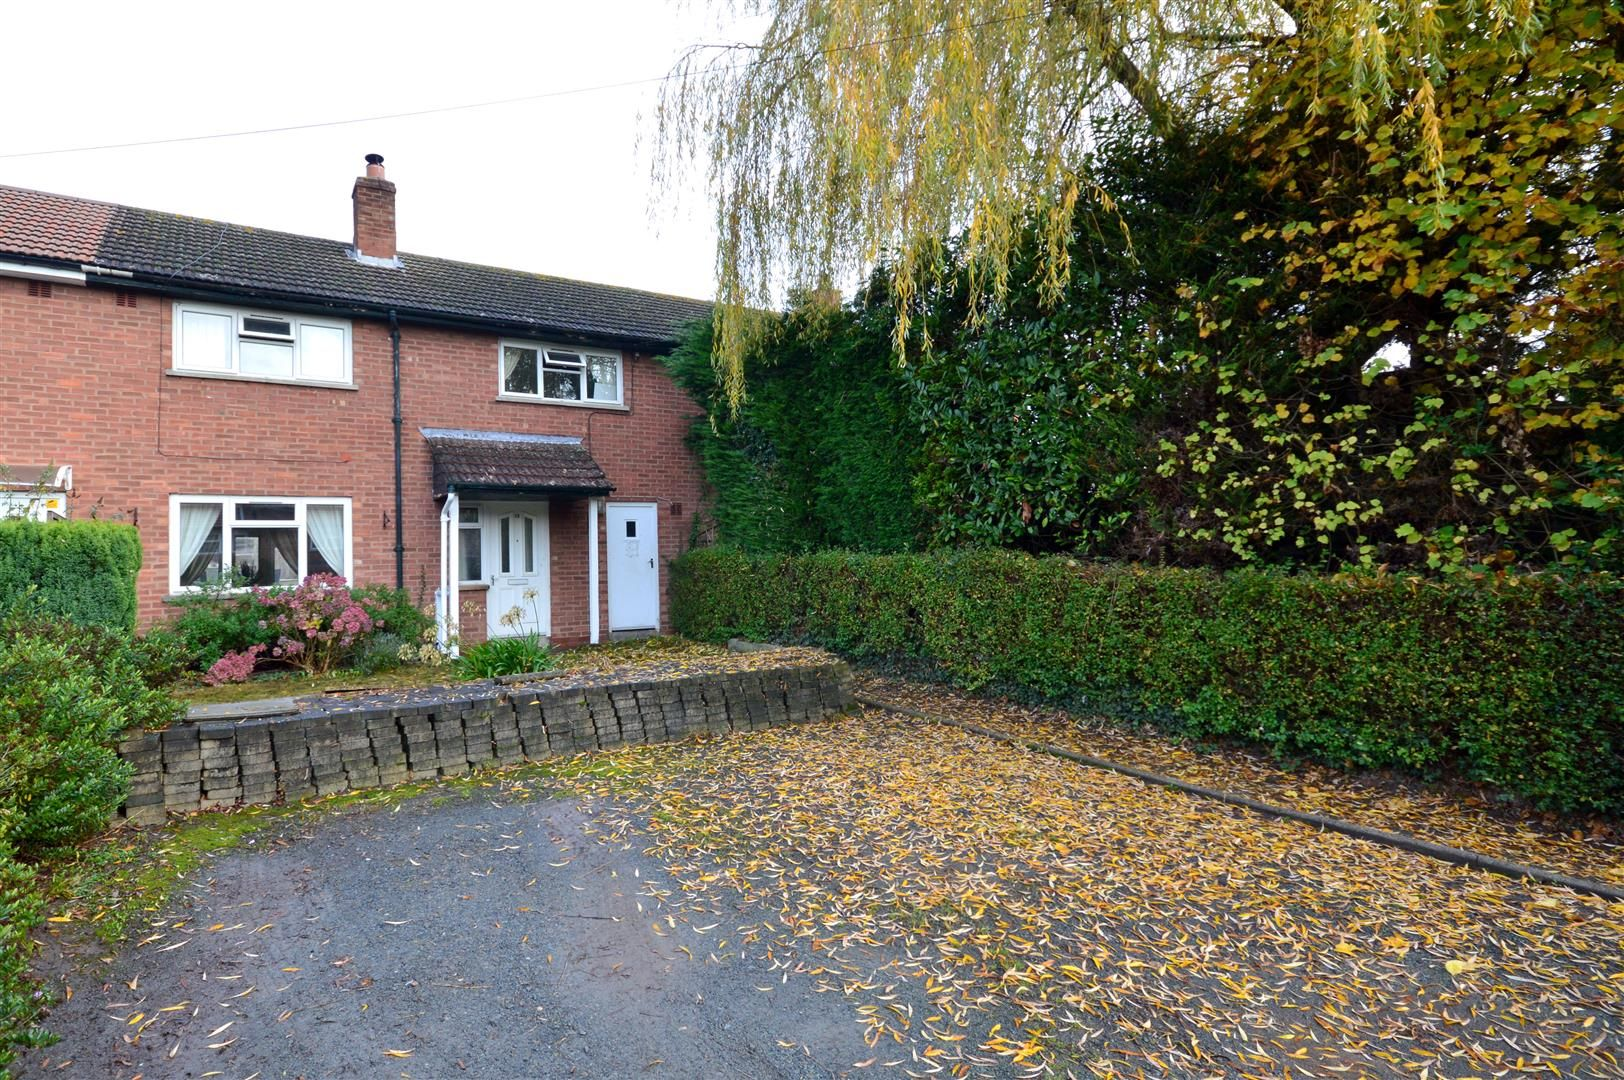 3 bed terraced for sale in Weobley, HR4